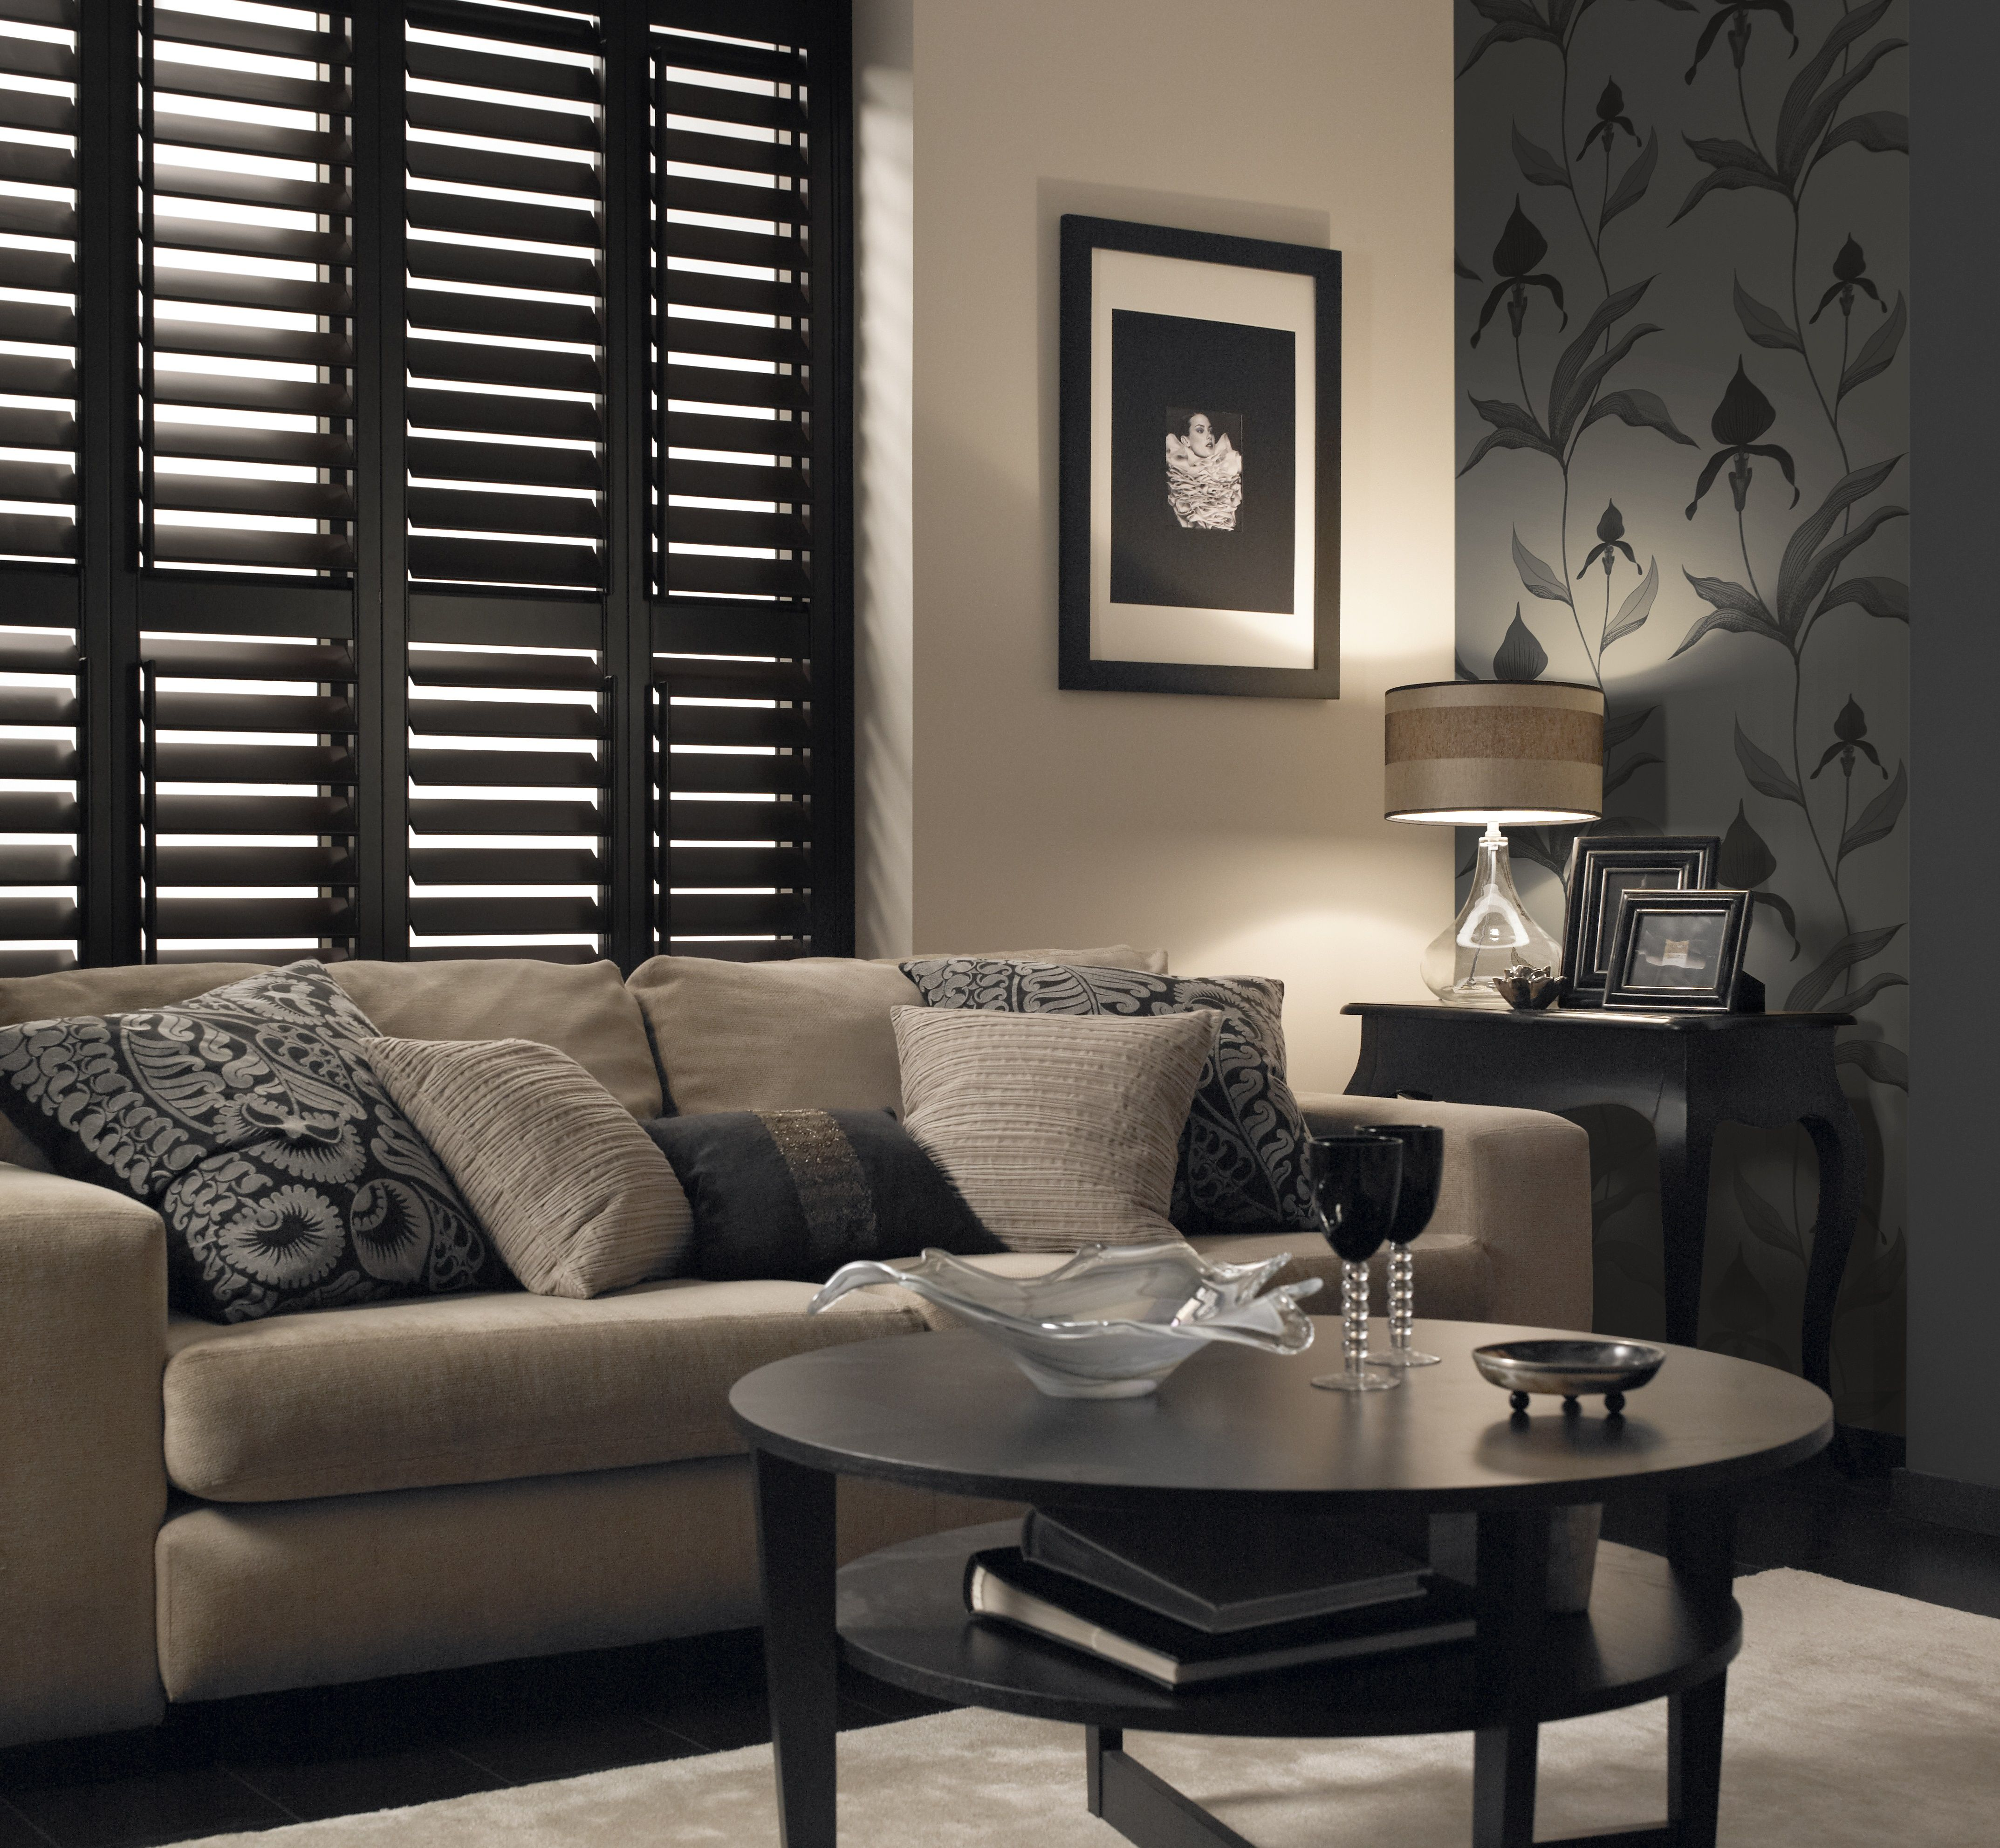 Living Room With Brown Shutters Interior Windows Wooden